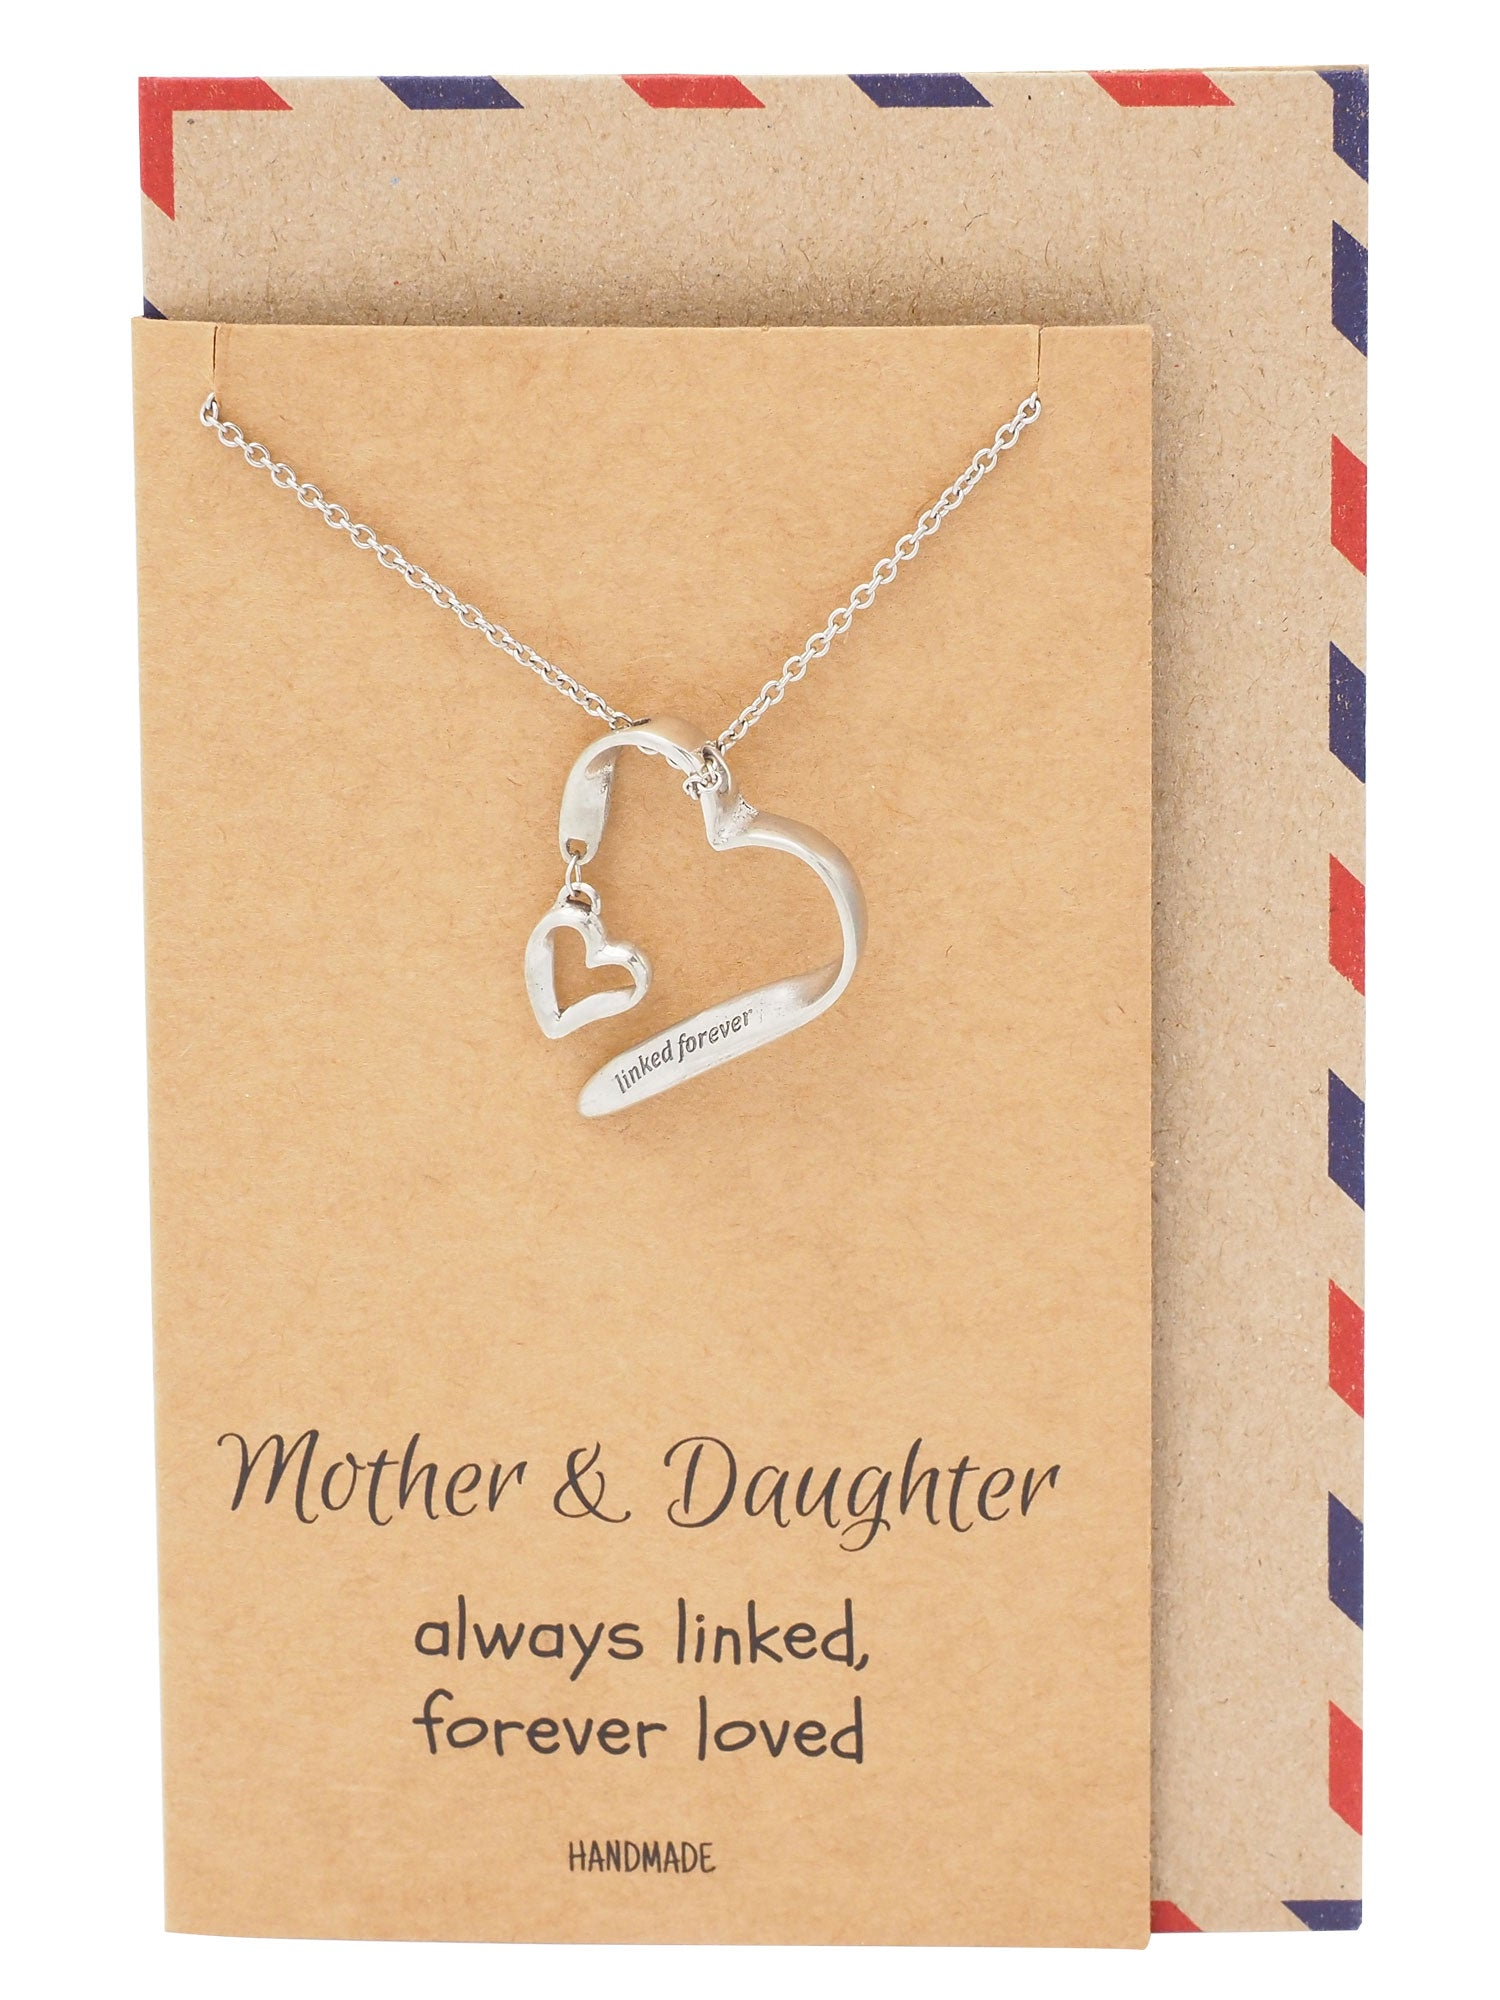 Caroline Mother Daughter Necklace, Two Hearts One Love - Quan Jewelry